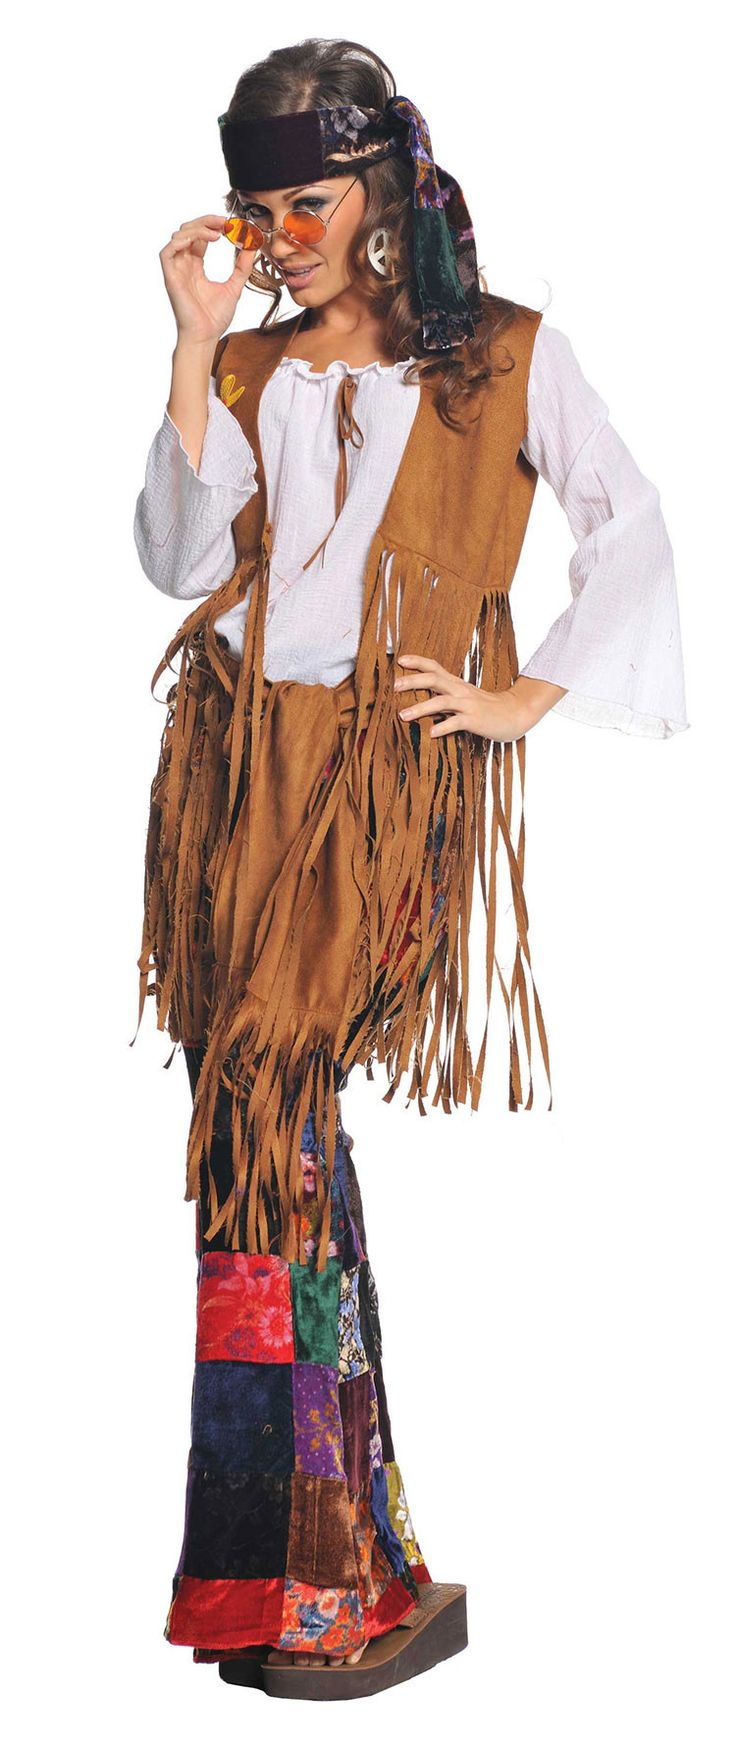 #29284 Spread peace and love this Halloween as the Peace Out Hippie. The Peace Out Hippie Costume includes a brown faux suede vest with long fringe, a white shirt with neck tie and velvet patchwork pr